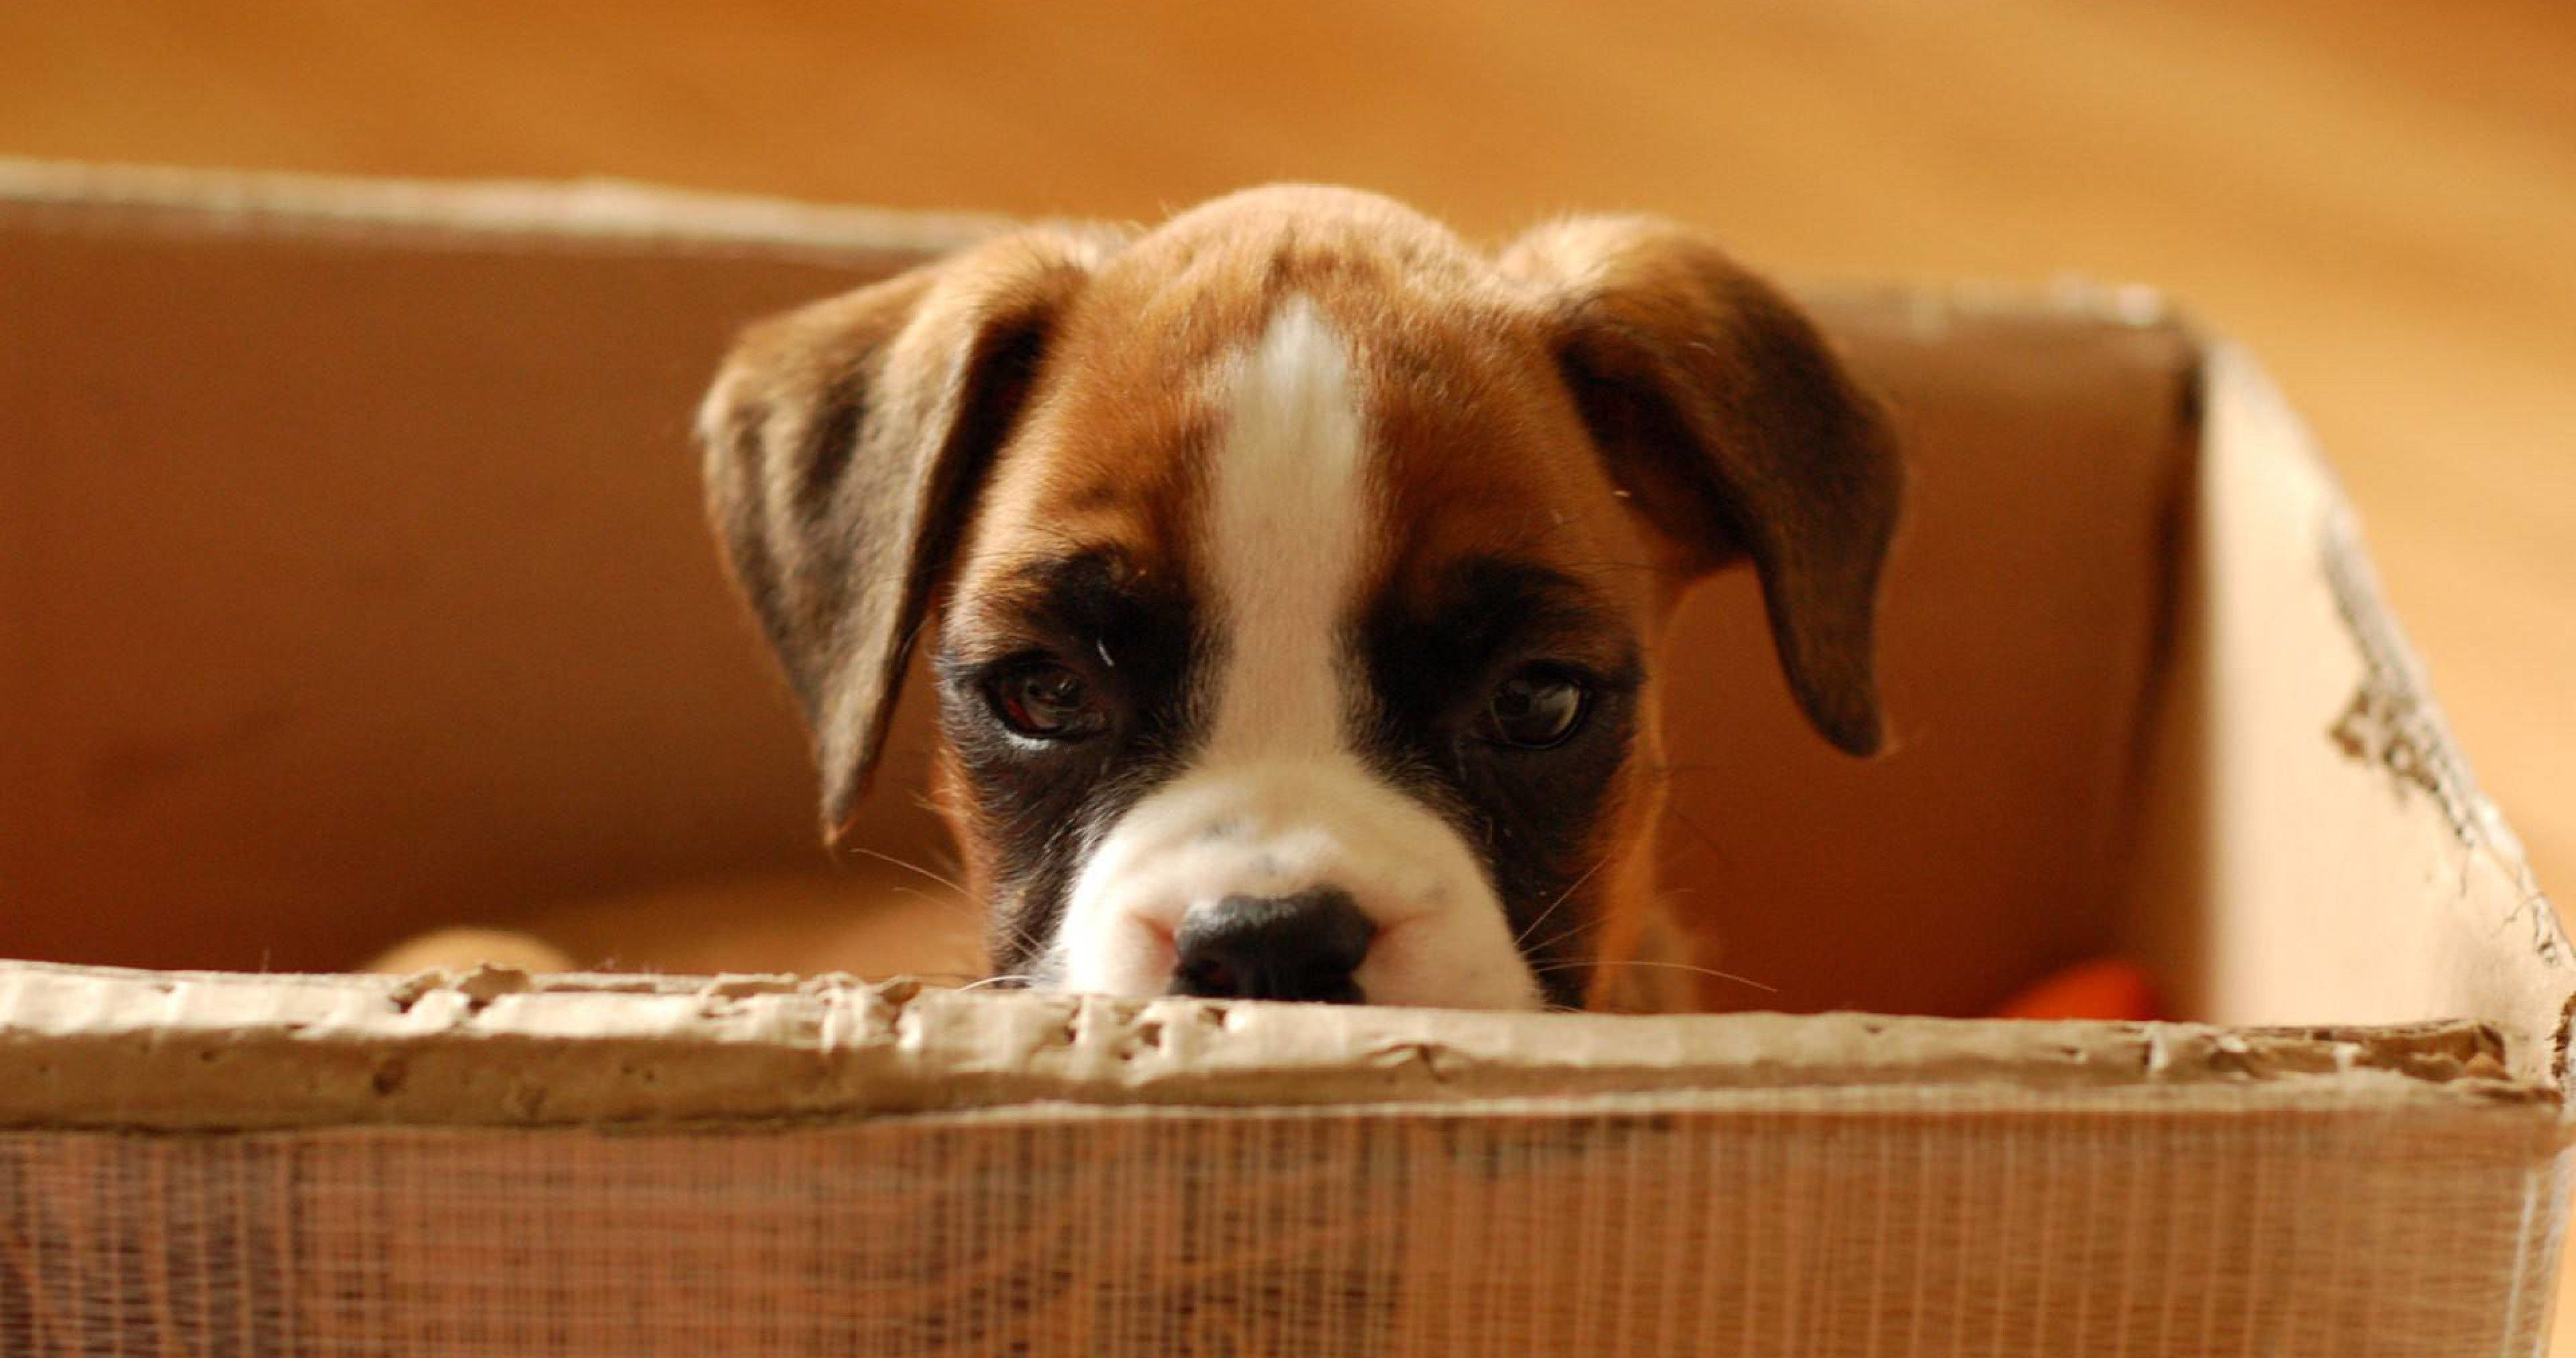 Boxer Puppy Hd Wallpaper Hd Wallpapers Hd Dog Photos Dog Breeds Pictures Dog Breed Info